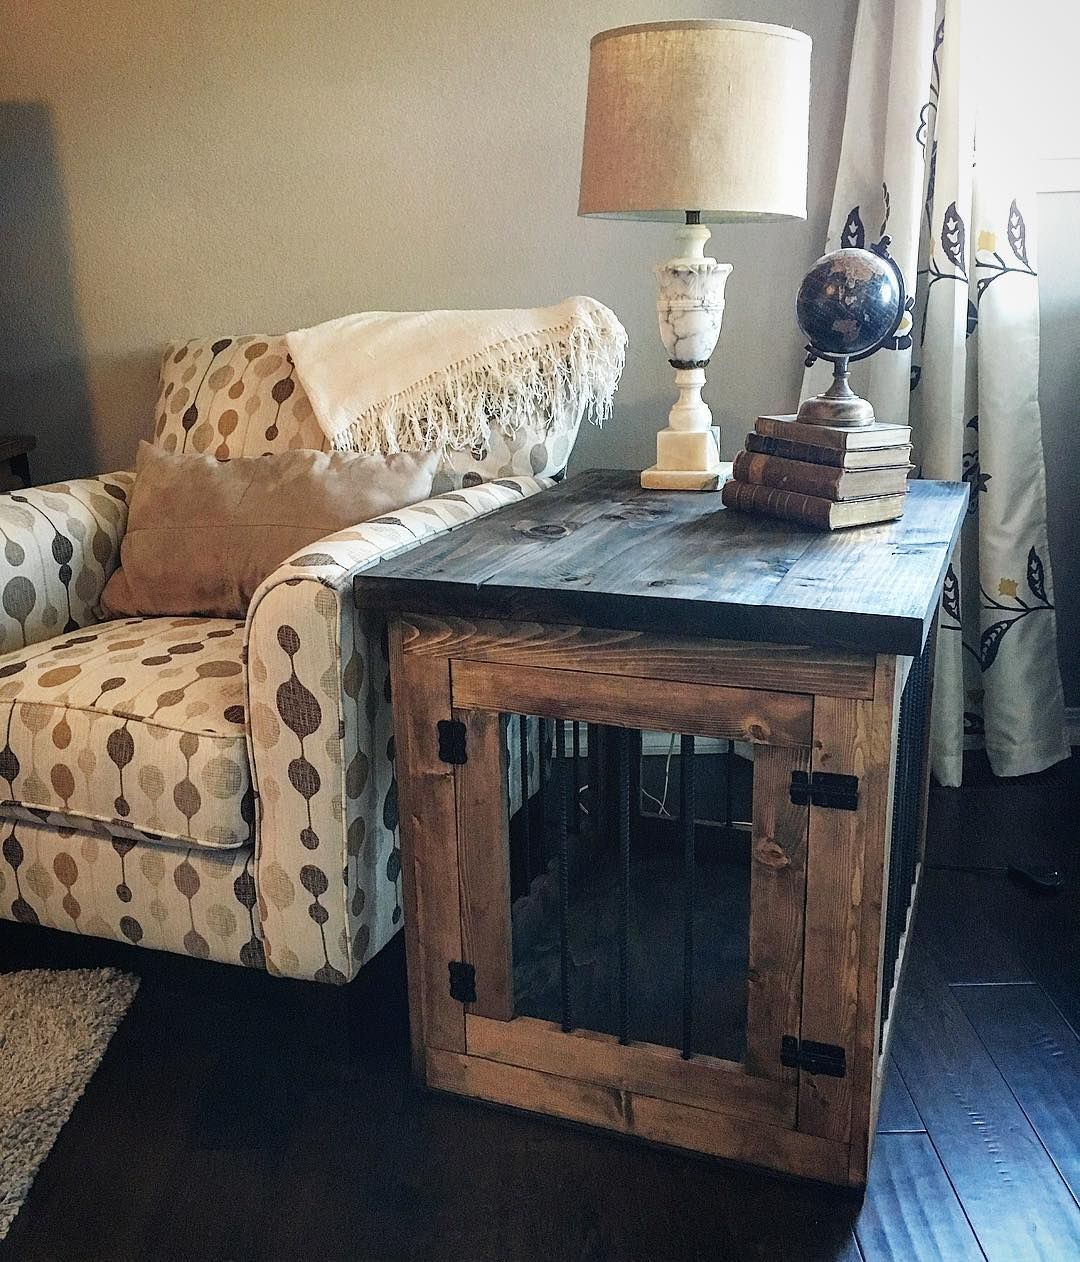 dog furnishing ideas diy end table kennel furniture crate magnolia home lamps for mirrored nightstands distressed gray weathered open cube modern acrylic coffee outdoor fans round